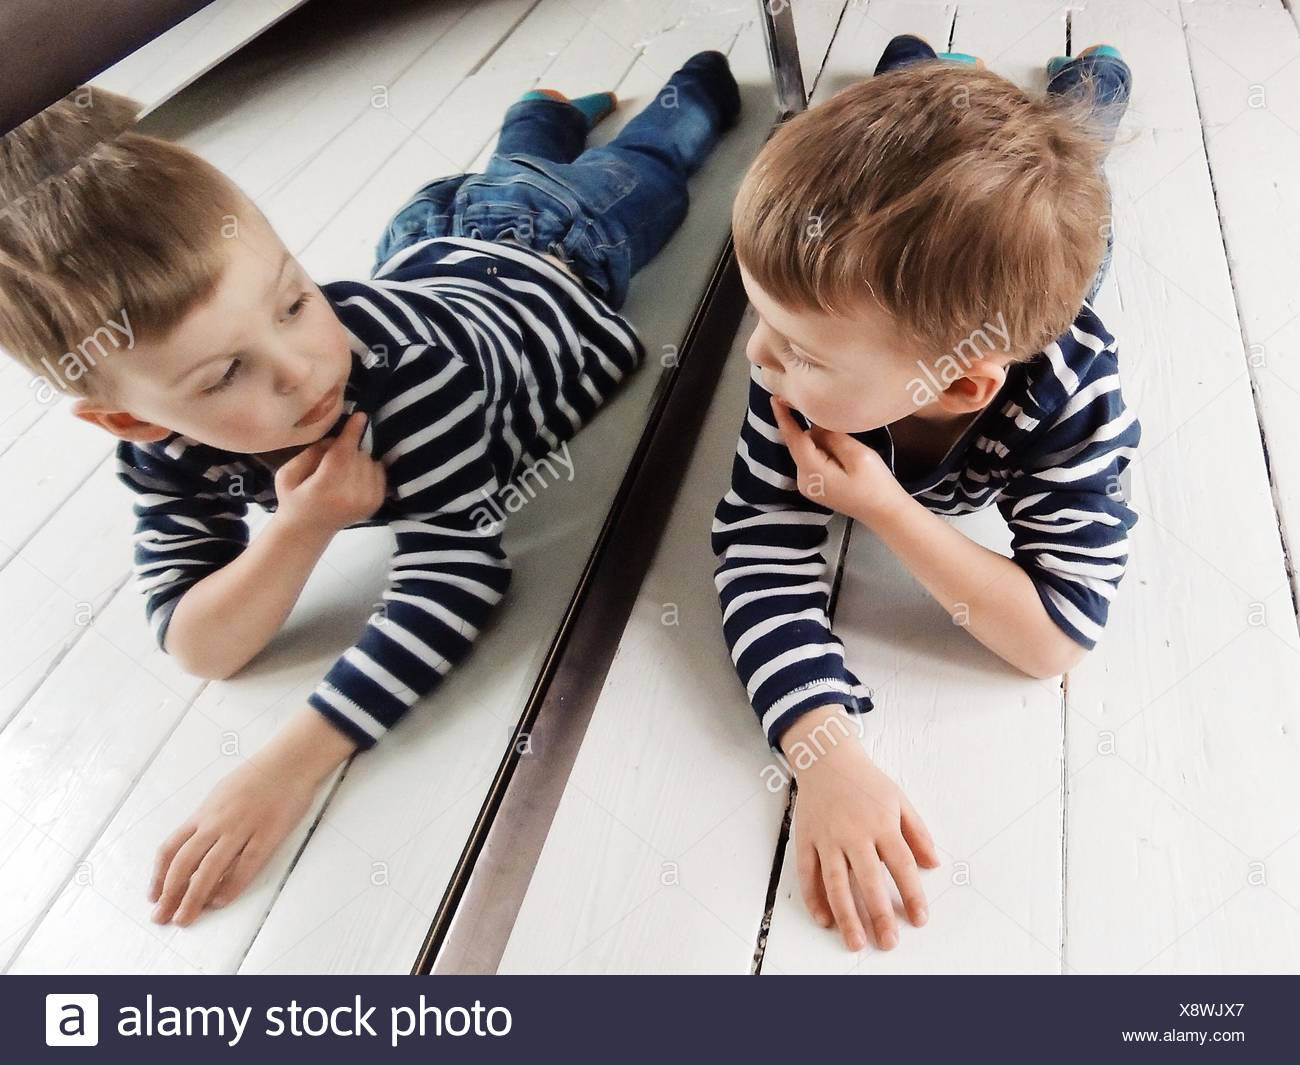 Portrait of a Boy lying on the floor looking at himself in the mirror - Stock Image